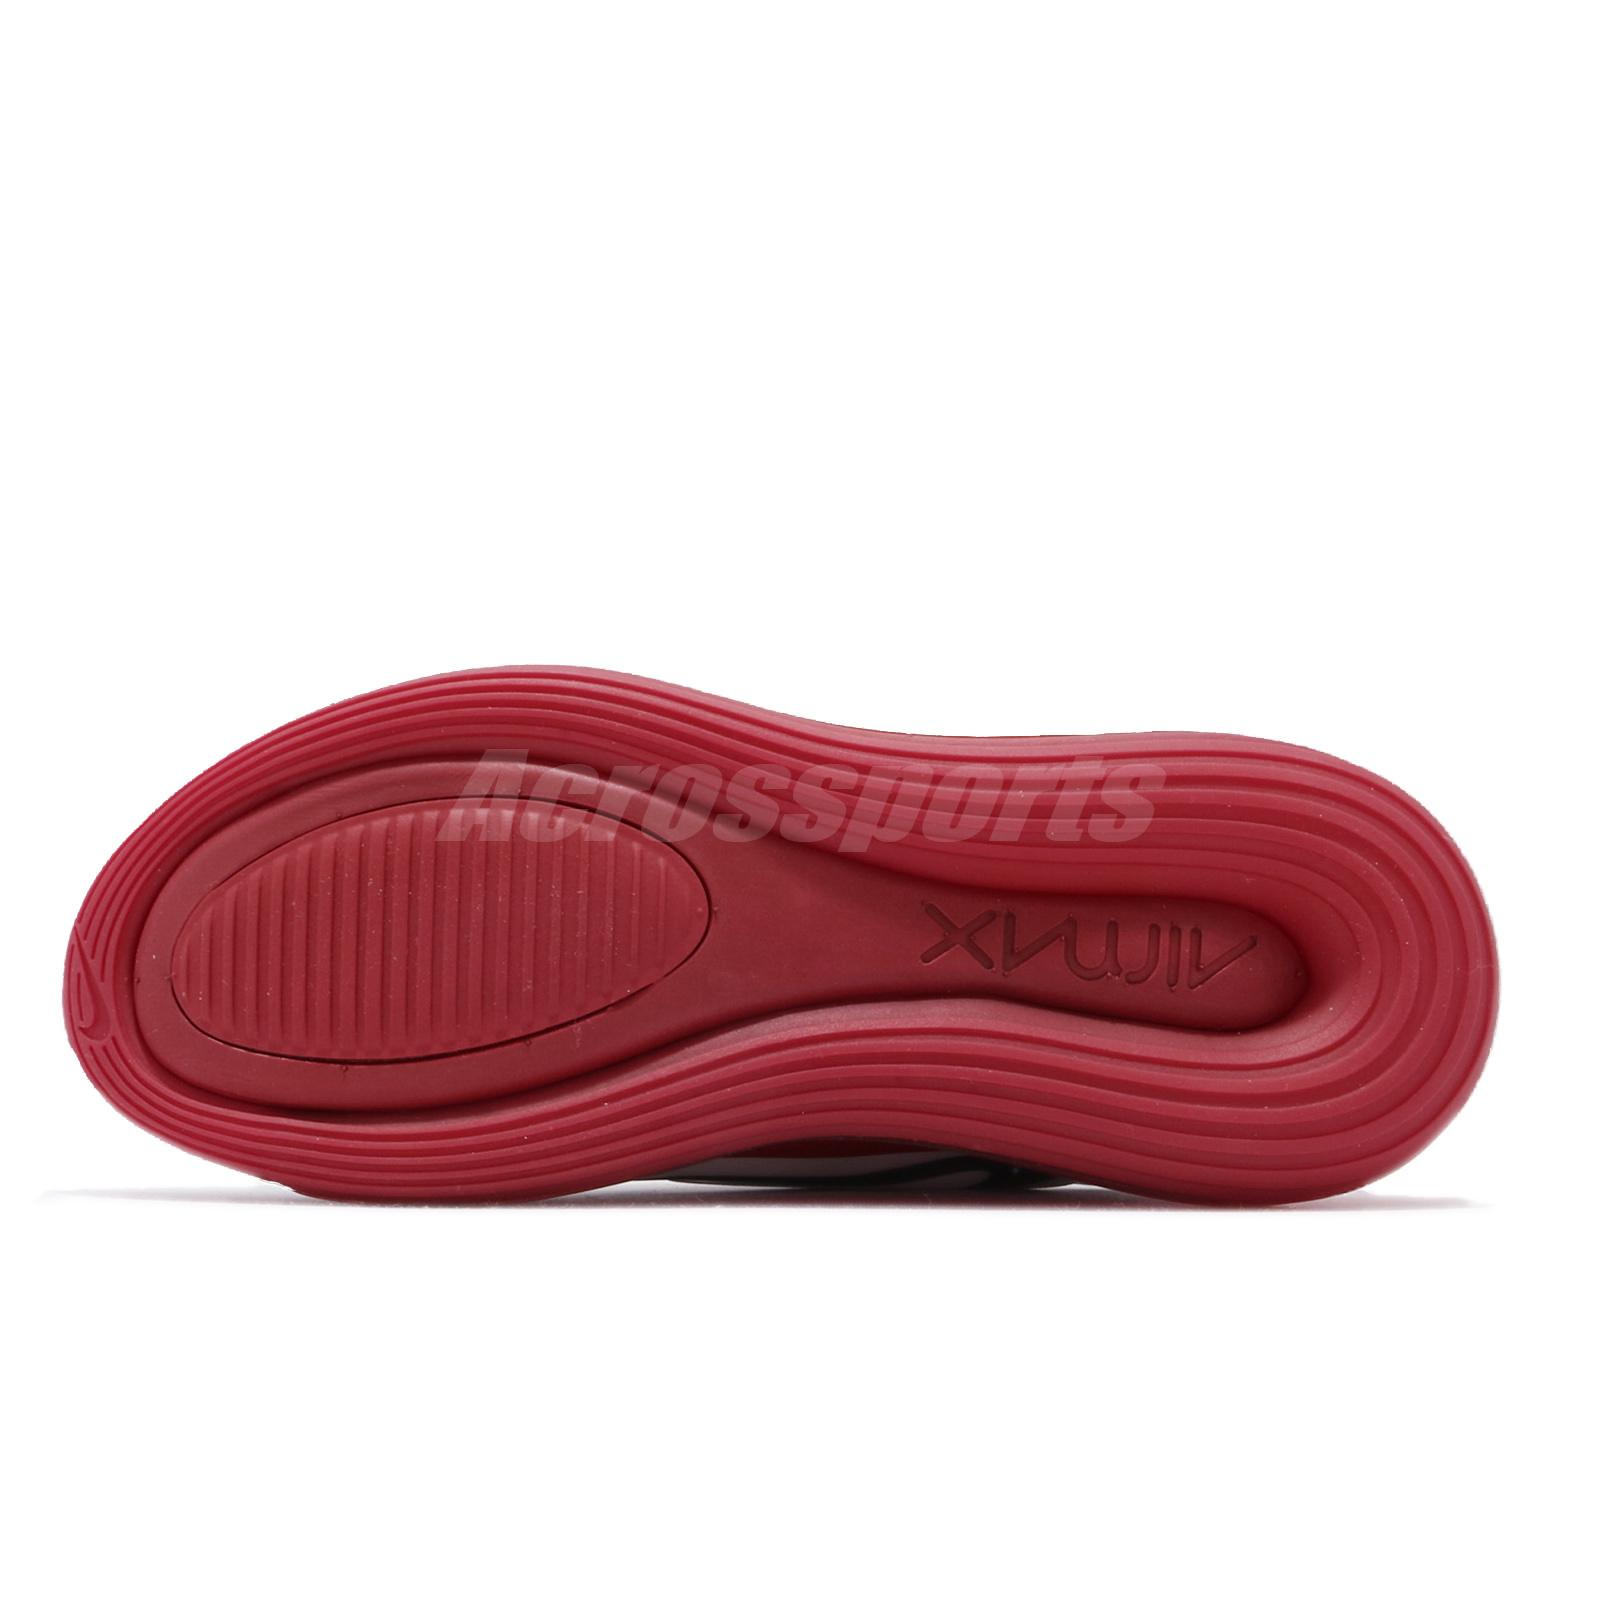 sports shoes 6e9a5 68242 Nike Wmns Air Max 720 SE White Gym Red Womens Running Shoes Sneakers ...